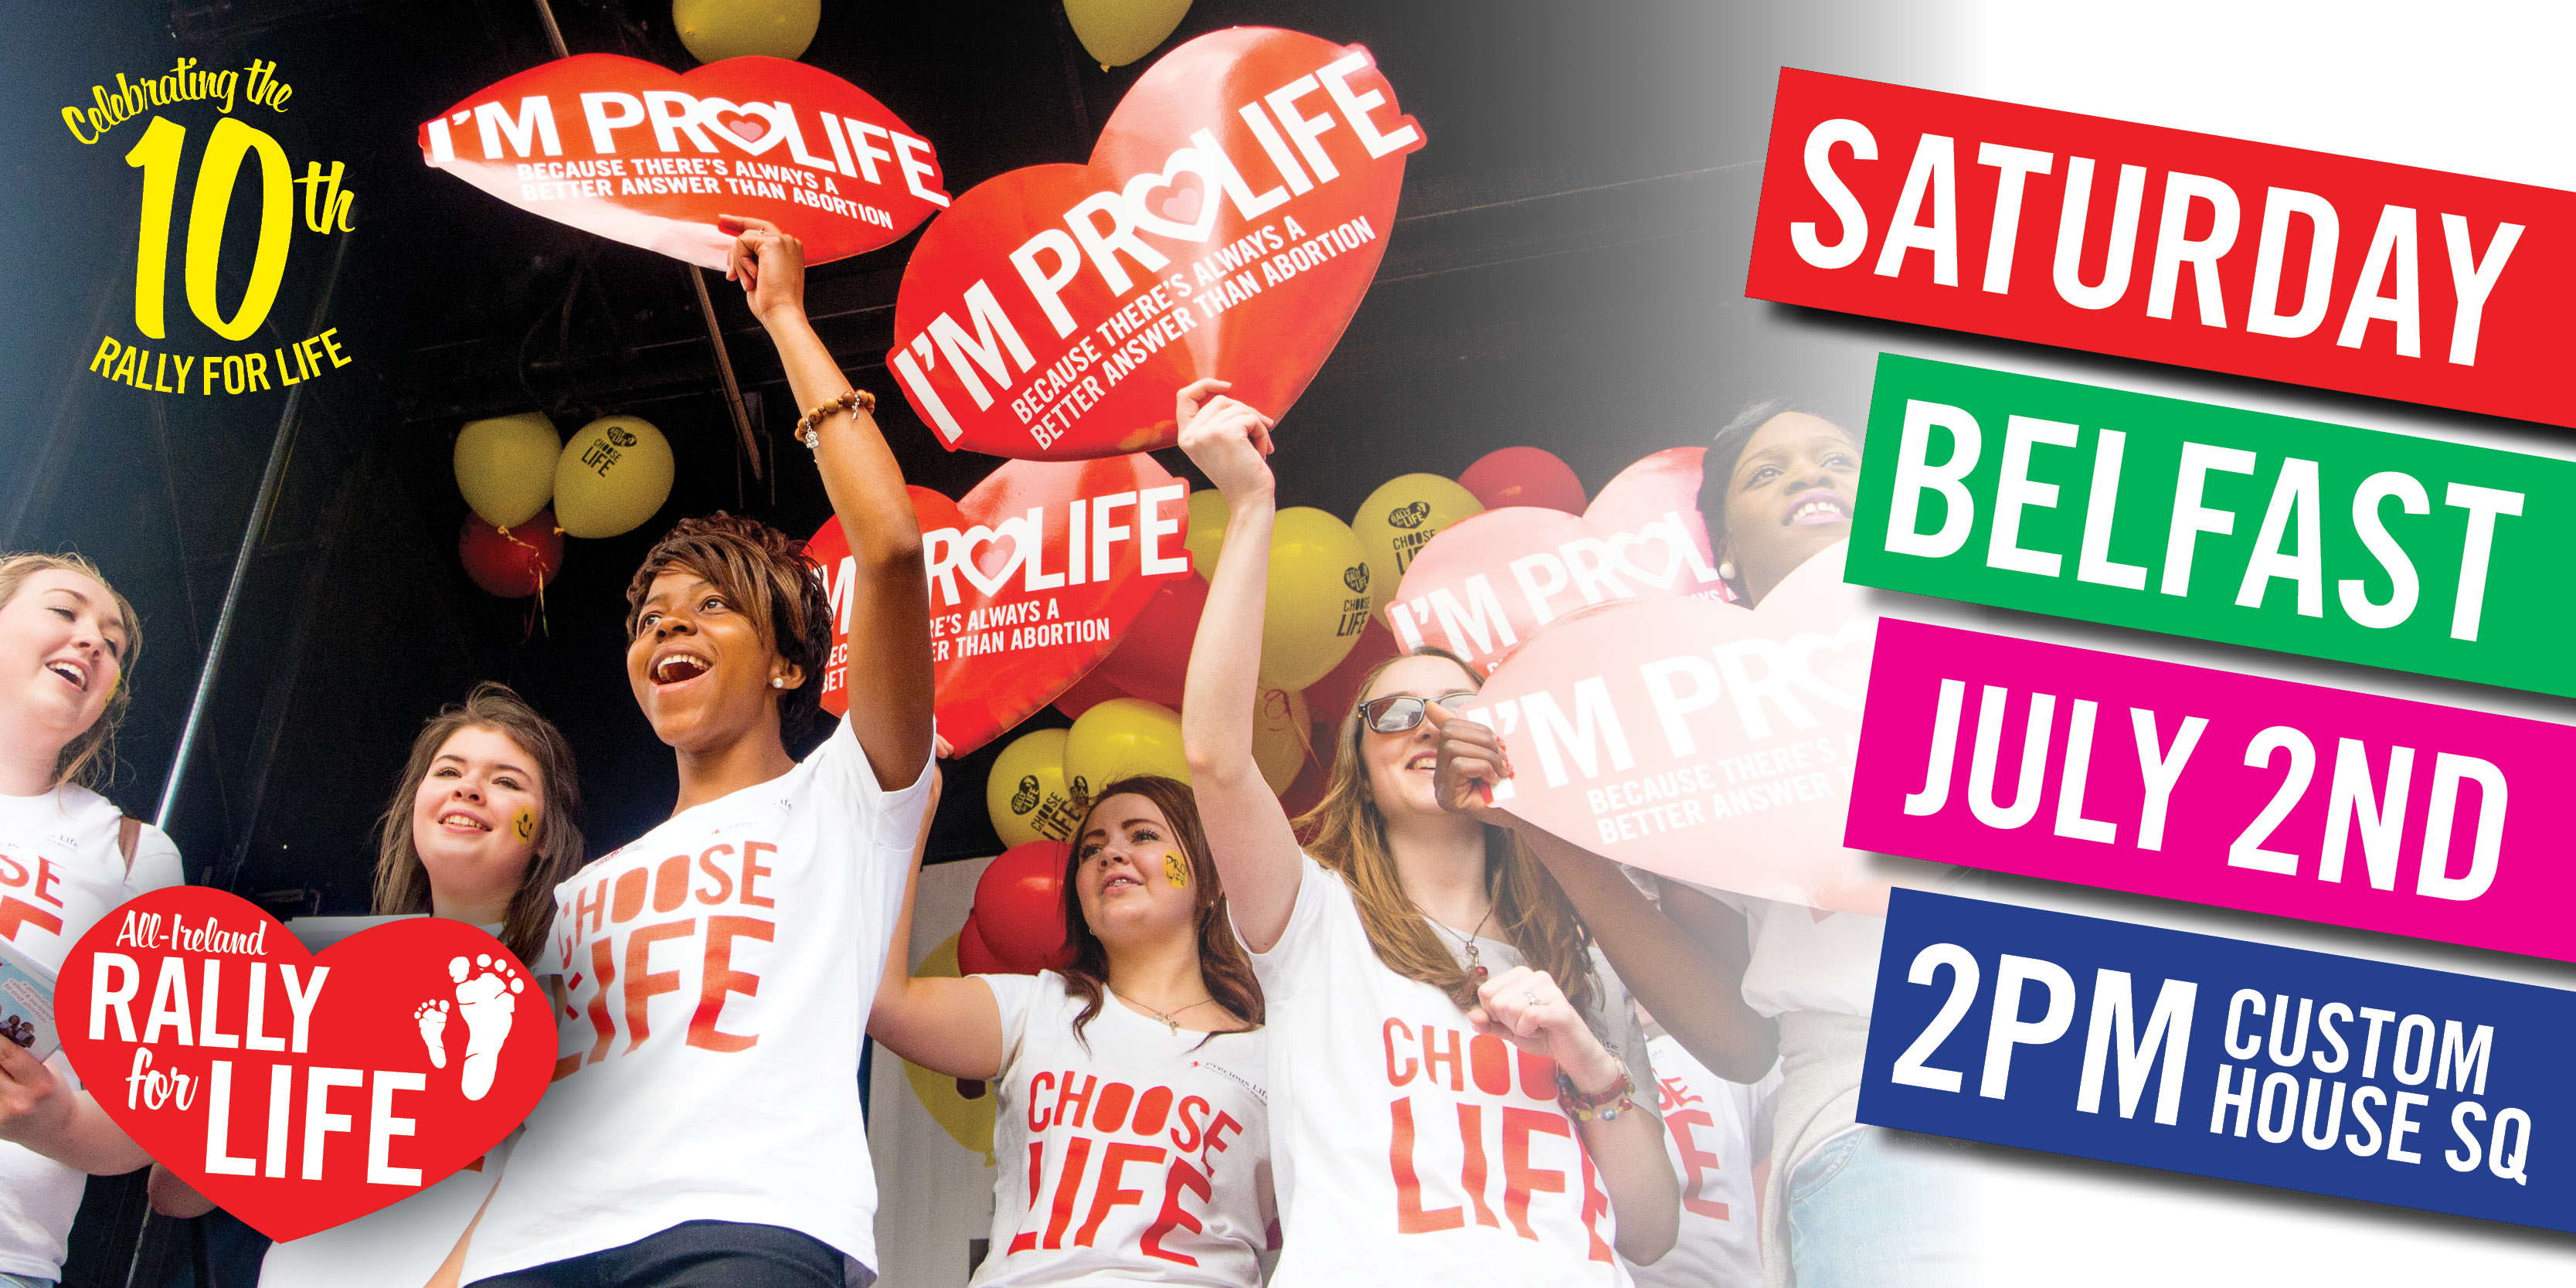 Rally for Life - Belfast - July 2nd 2016